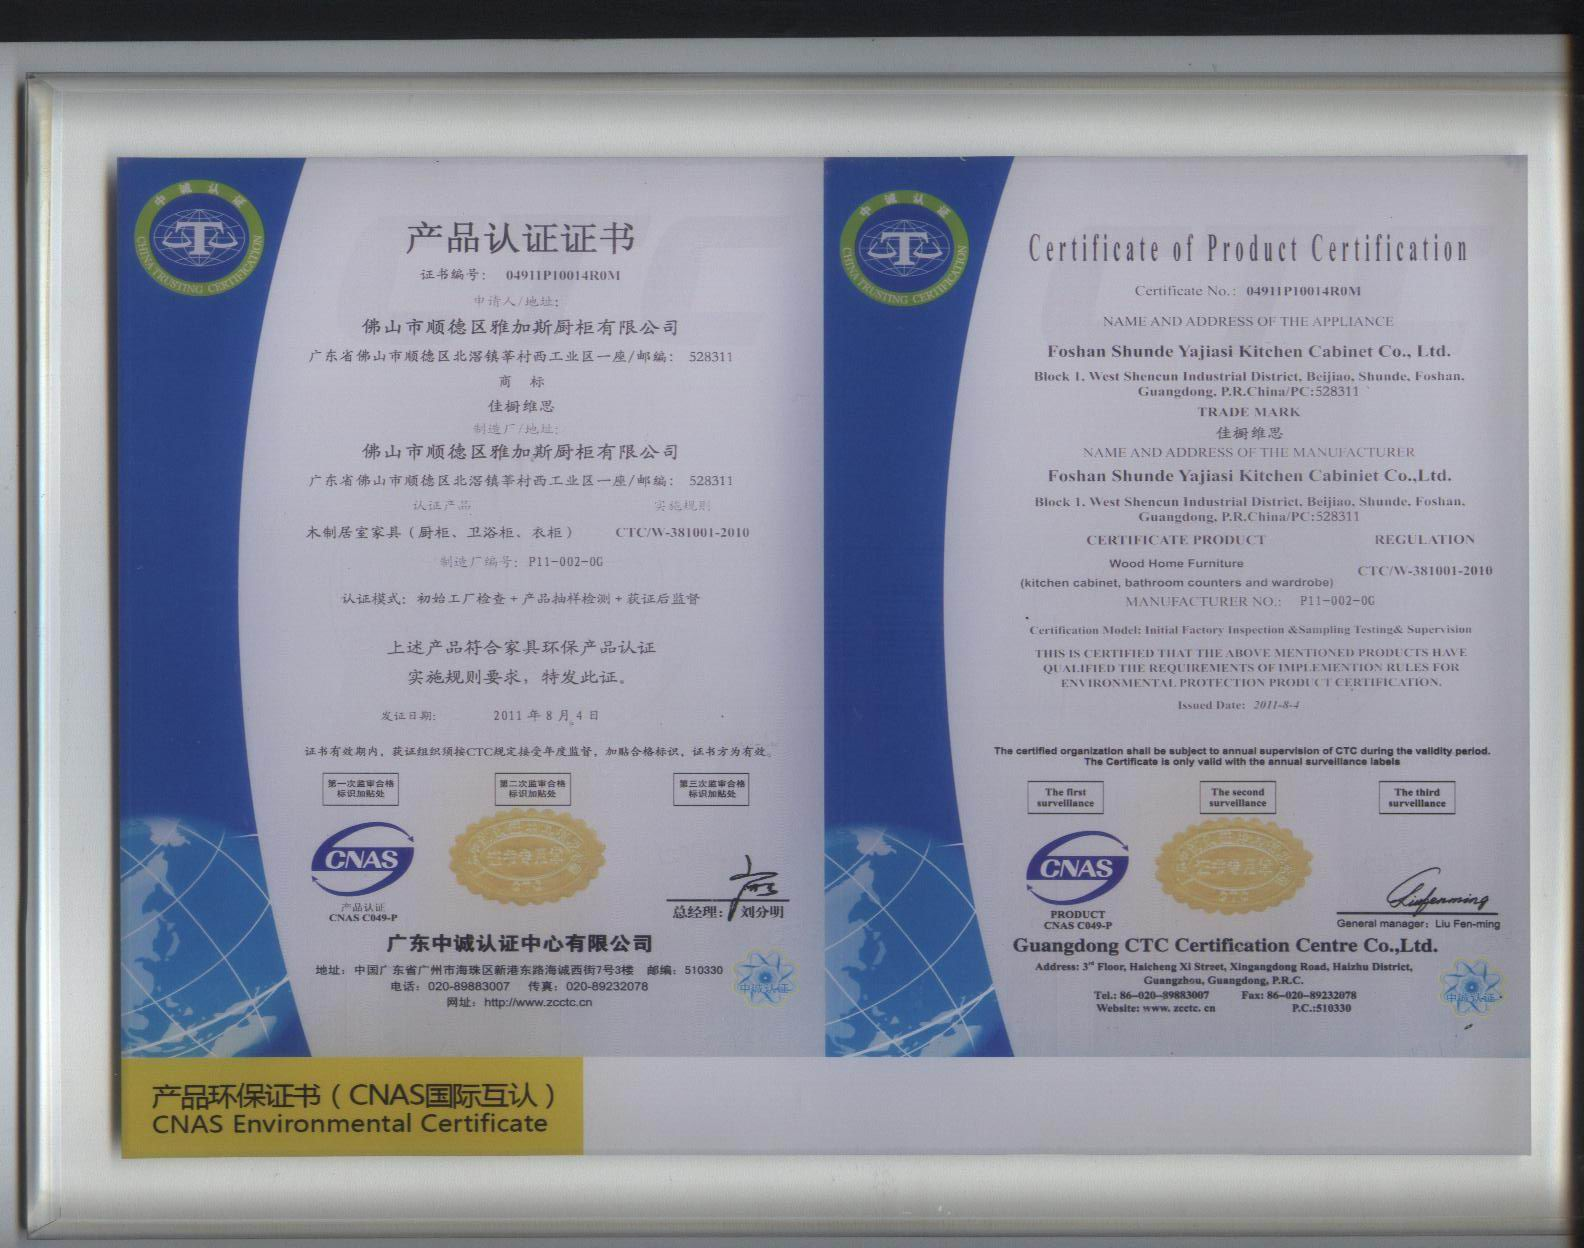 Certificate of Product Certification